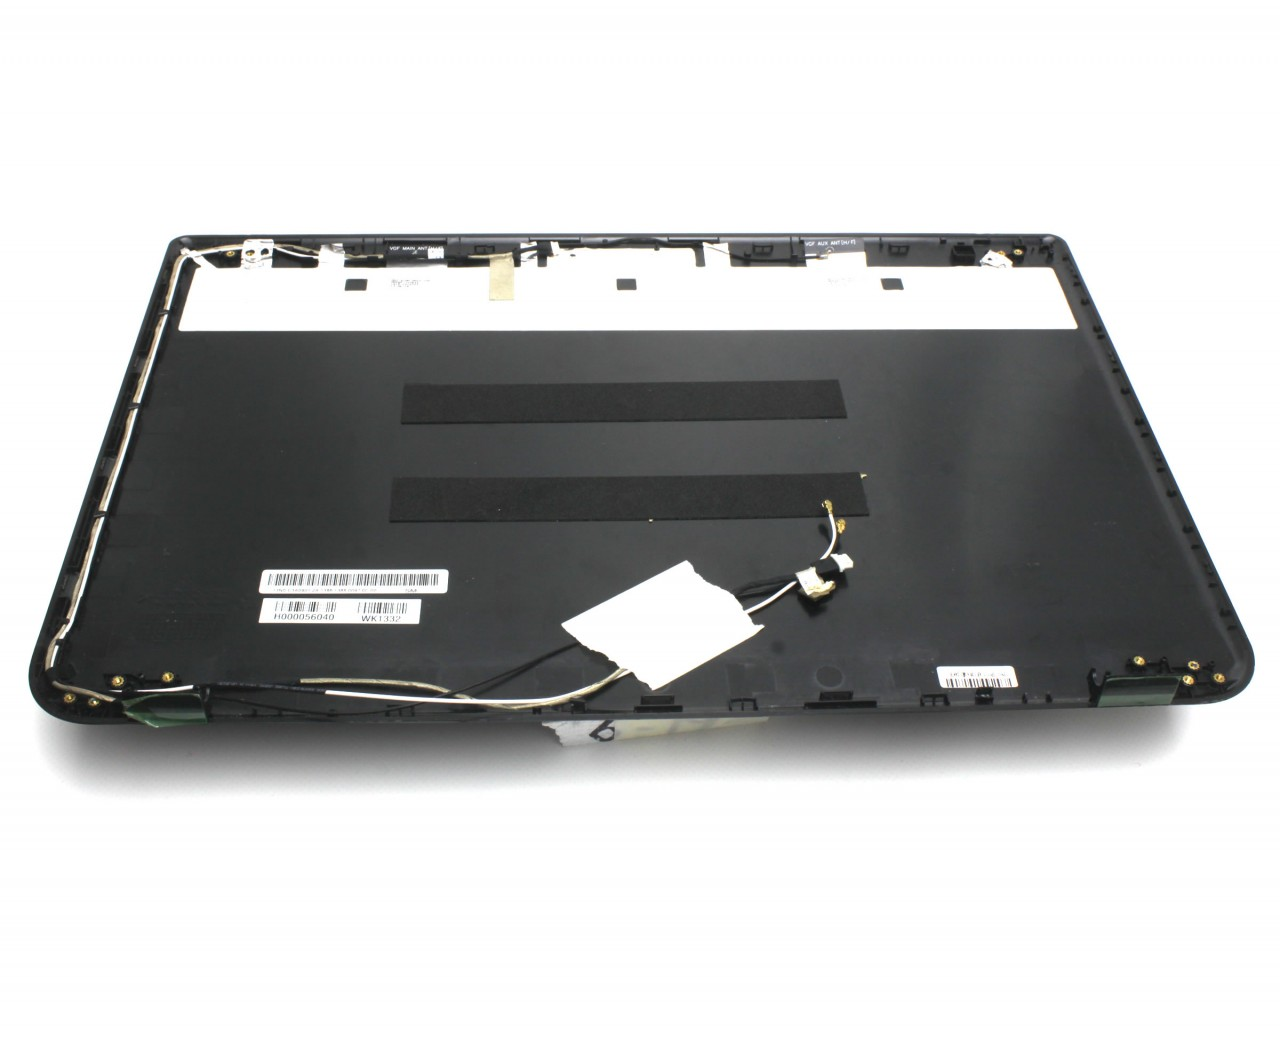 Capac Display BackCover Toshiba Satellite L50 4 12L Carcasa Display Neagra imagine powerlaptop.ro 2021